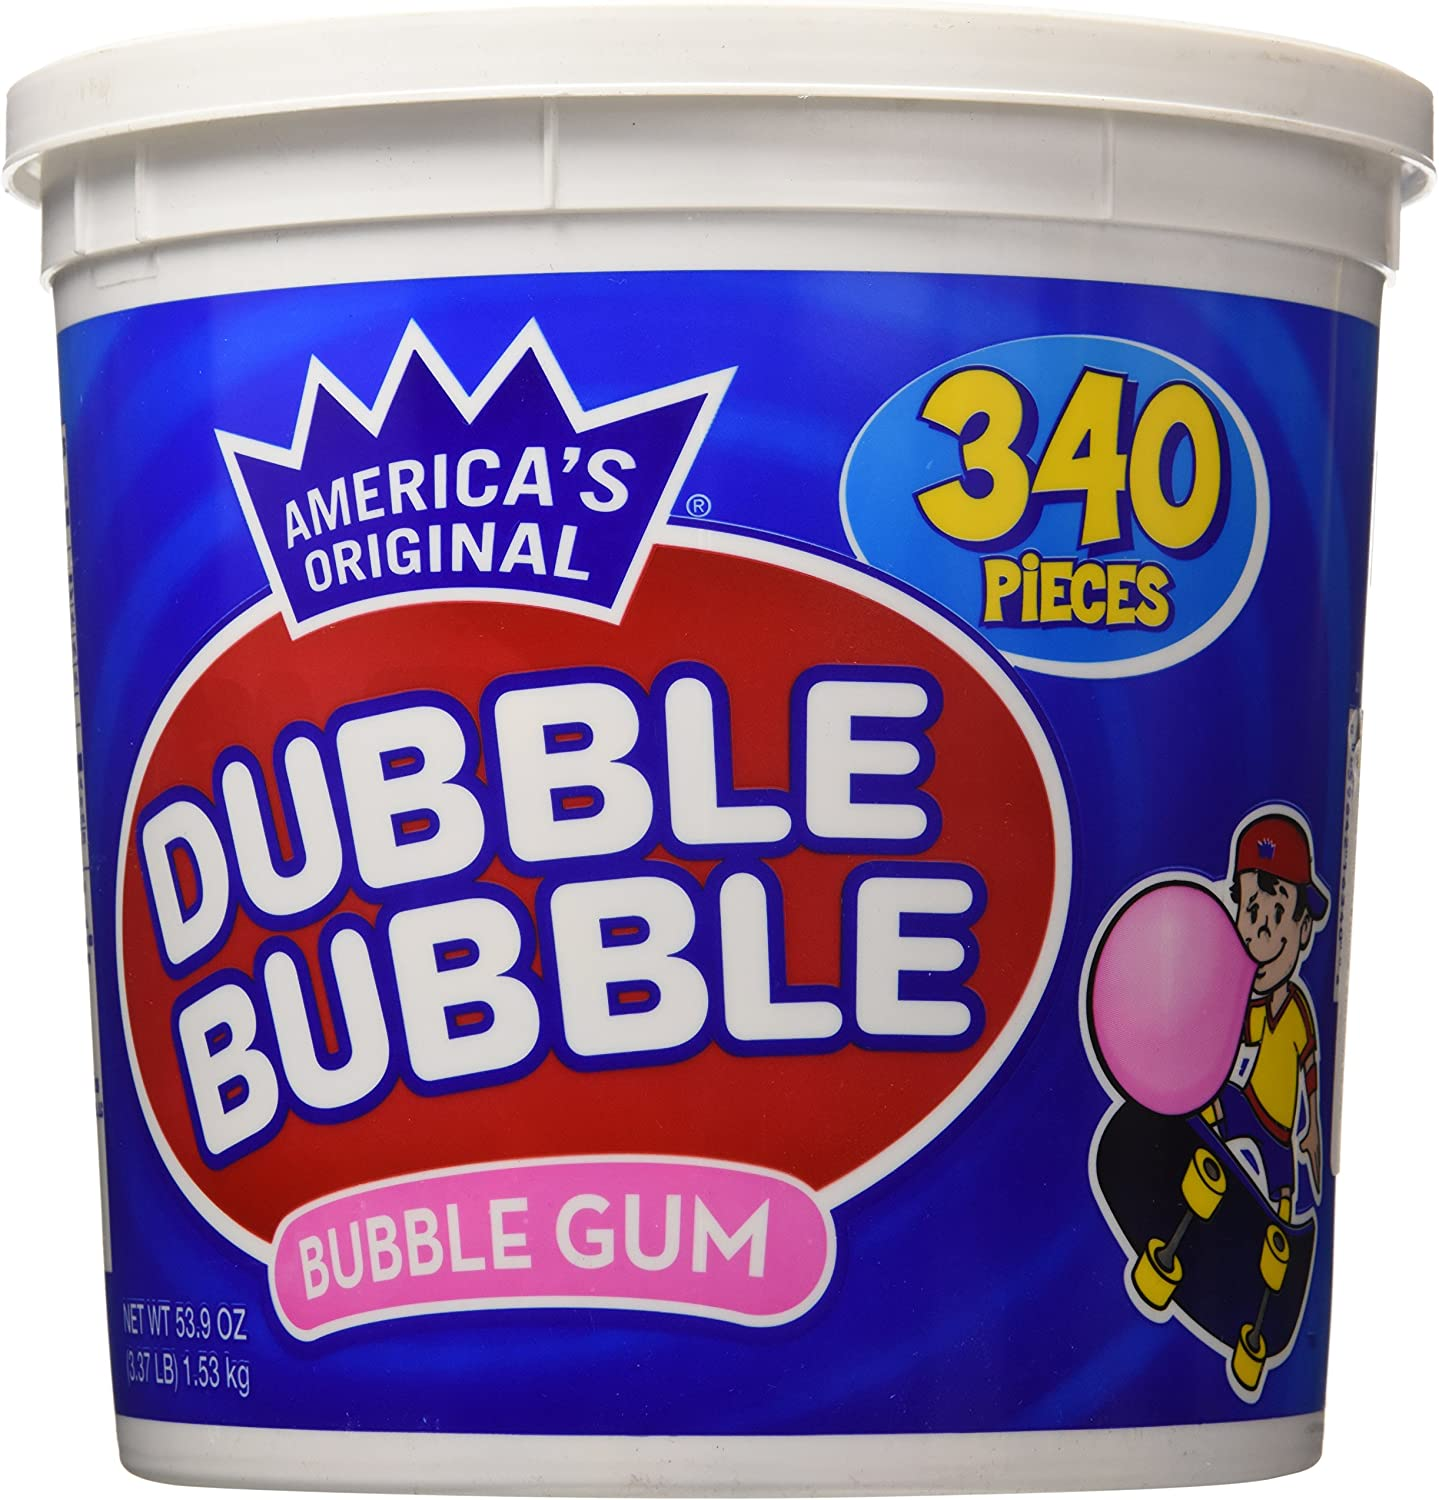 Dubble Bubble Gum, 53.9 Ounce - 340 Count Bucket